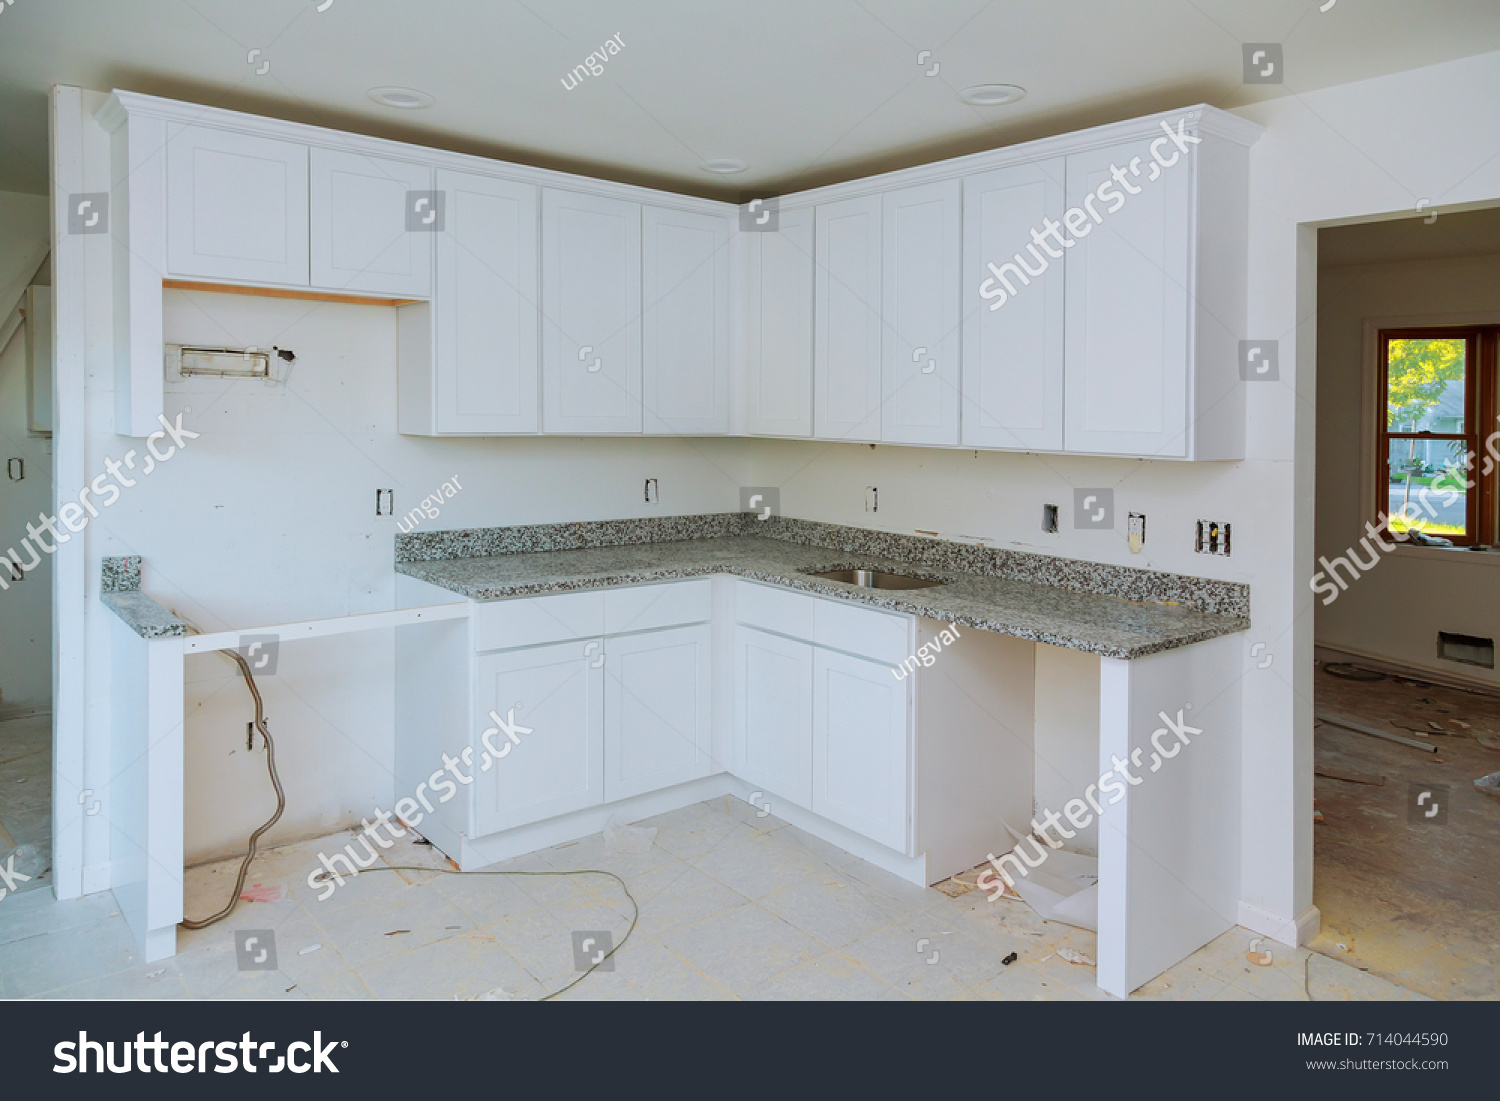 Installing New Induction Hob Modern Kitchen Stock Photo (Royalty ...